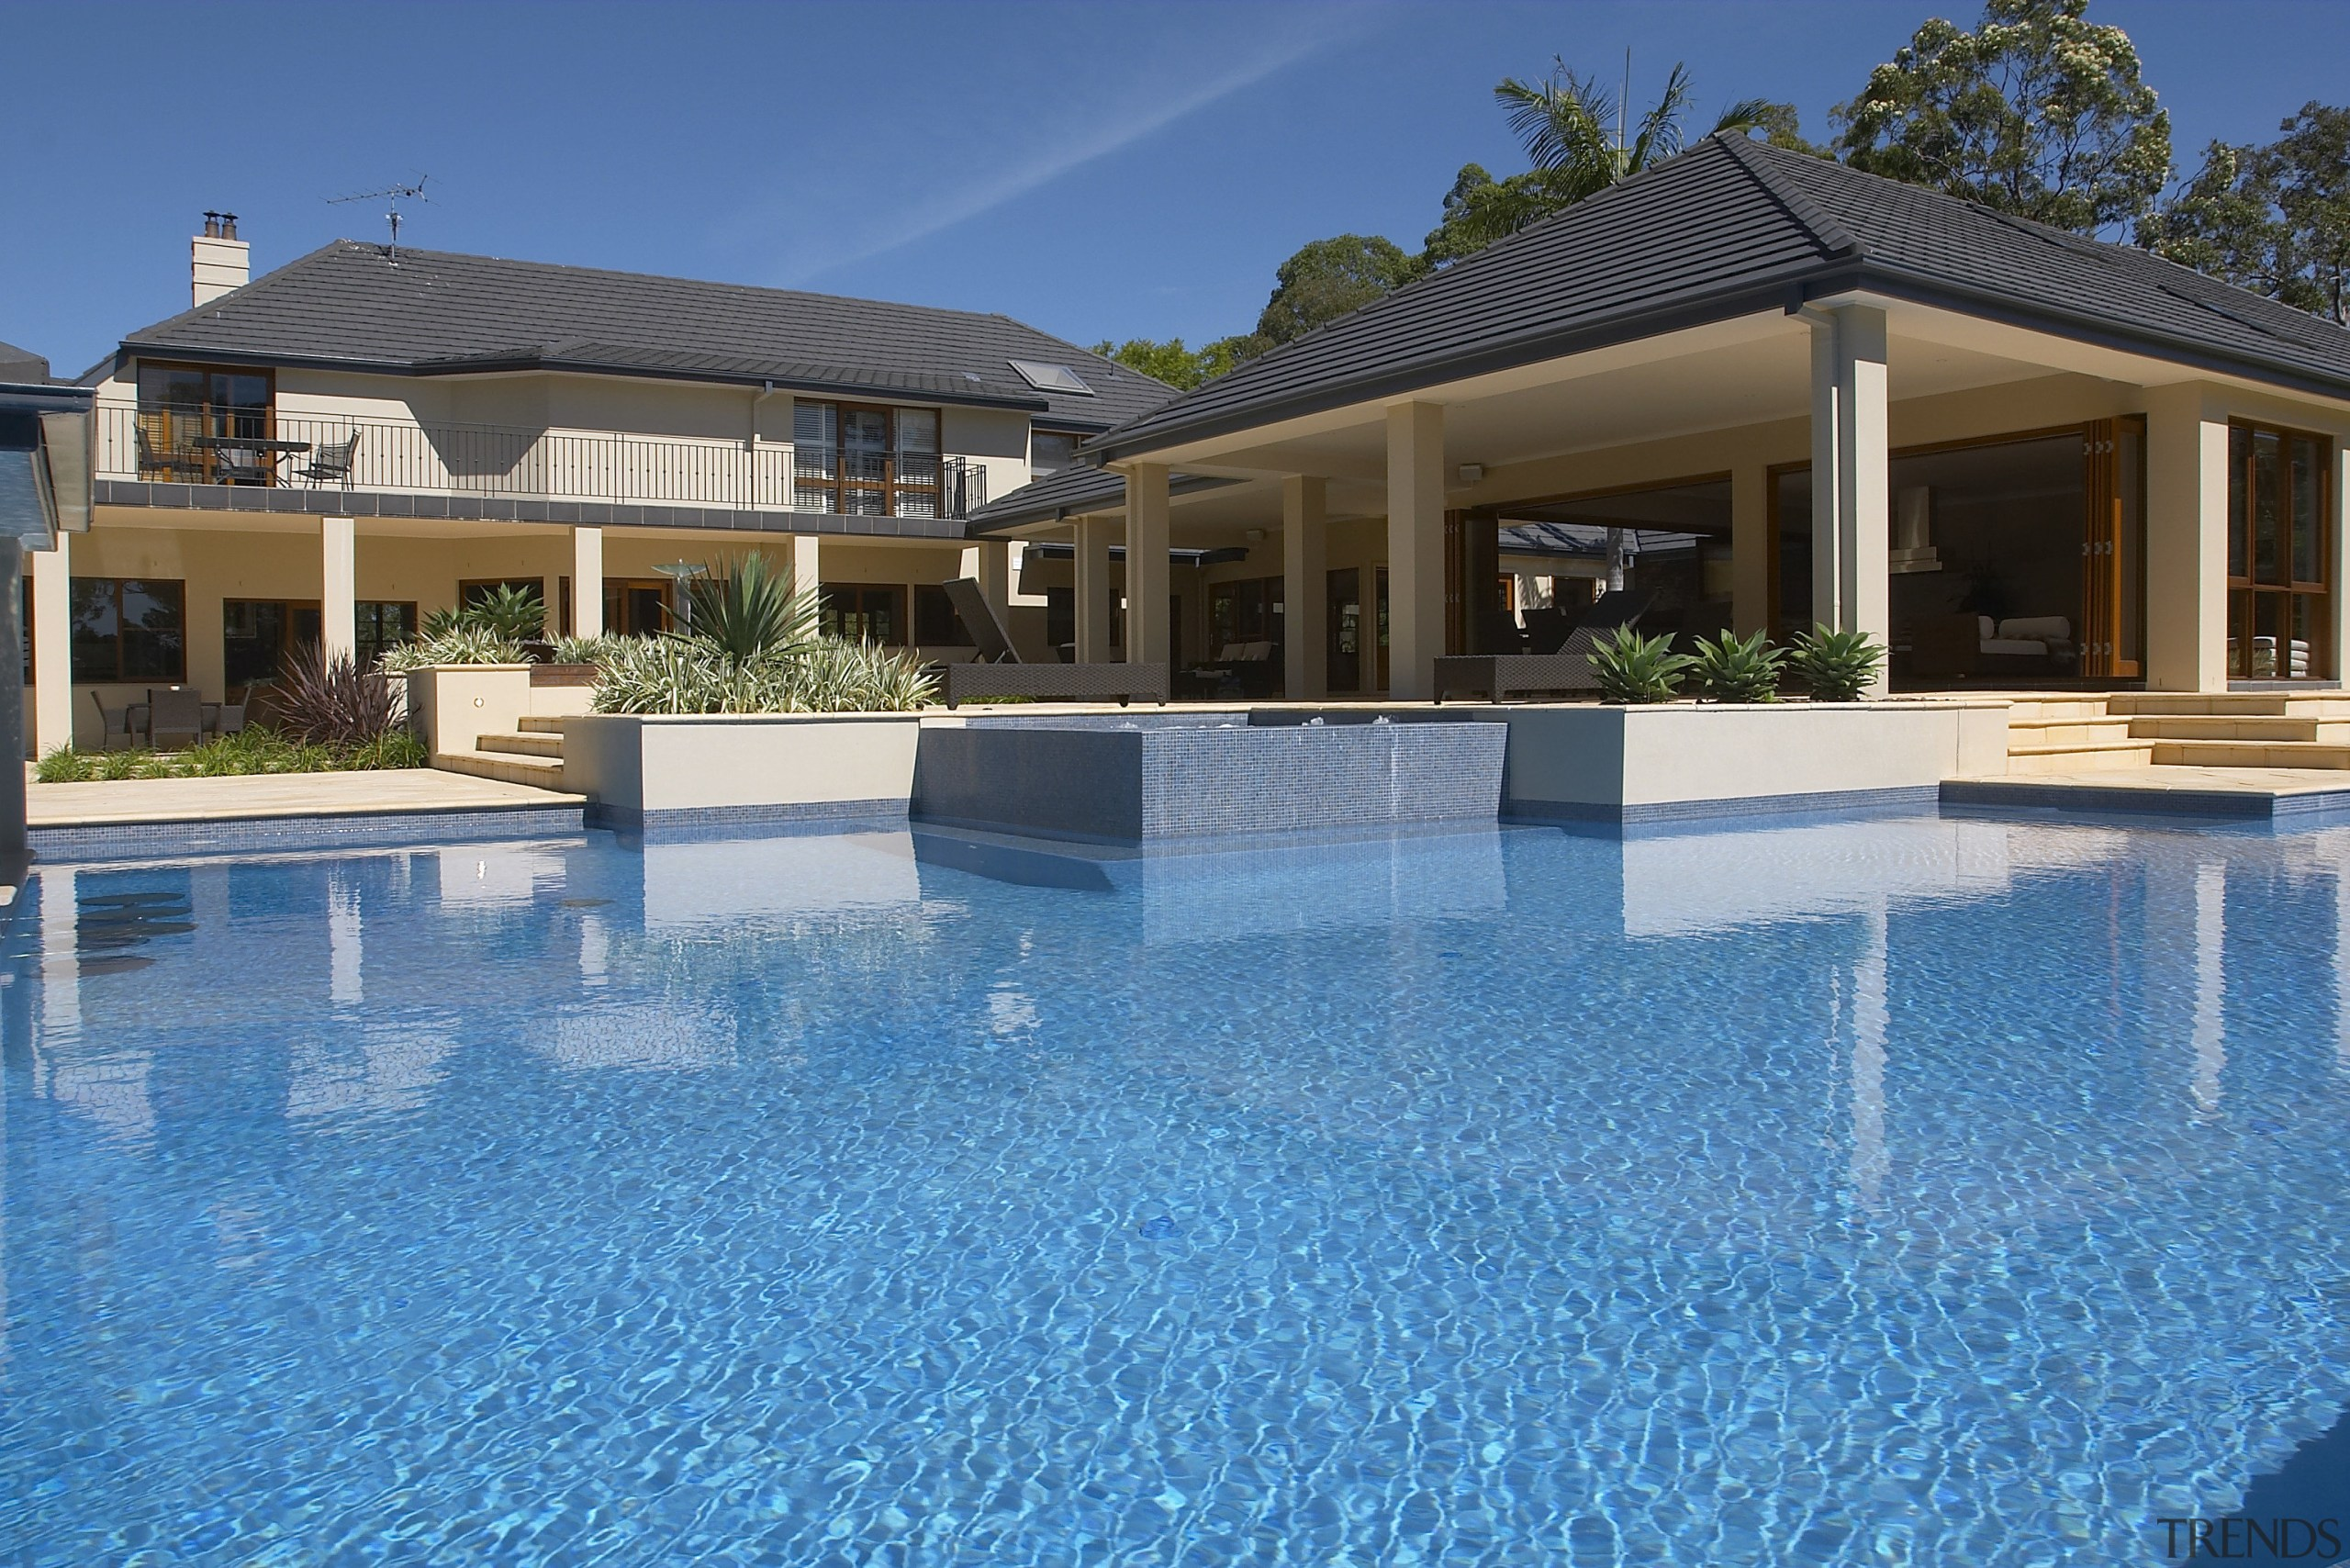 Exterior view of a home which was designed cottage, estate, home, house, leisure, mansion, property, real estate, resort, resort town, swimming pool, villa, water, teal